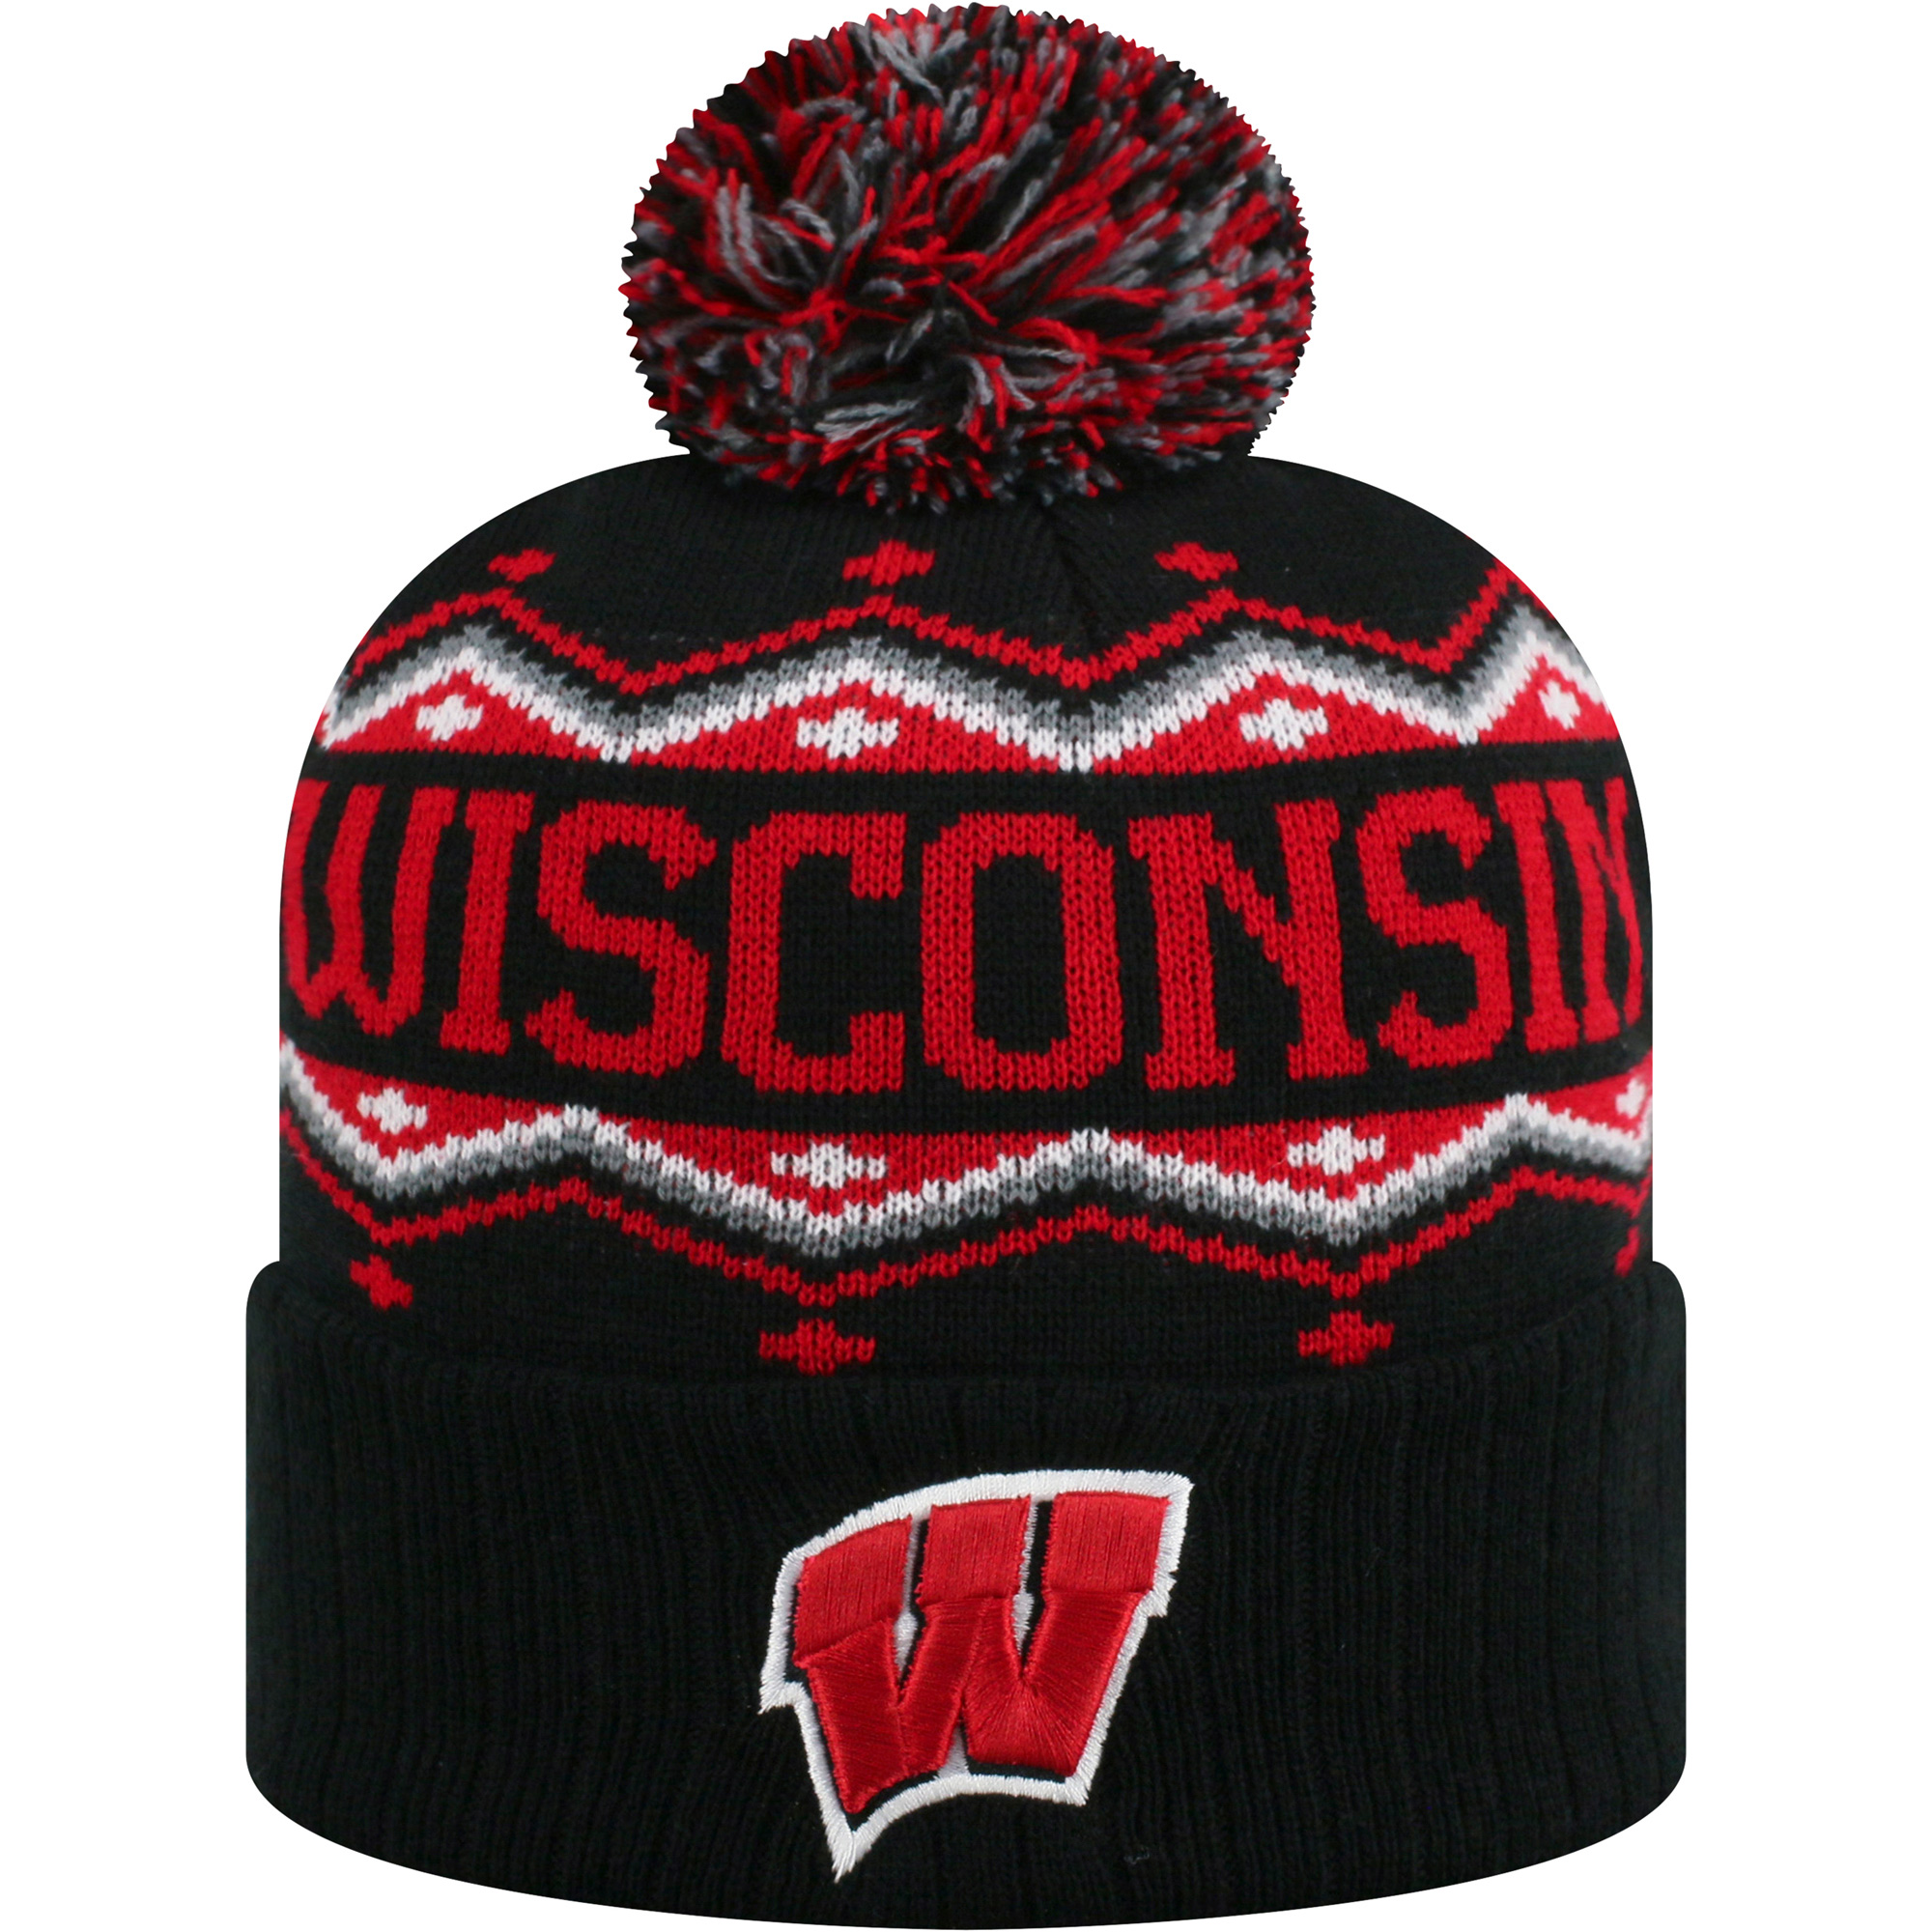 Men's Russell Black/Red Wisconsin Badgers Sewn Cuffed Knit Hat With Pom - OSFA